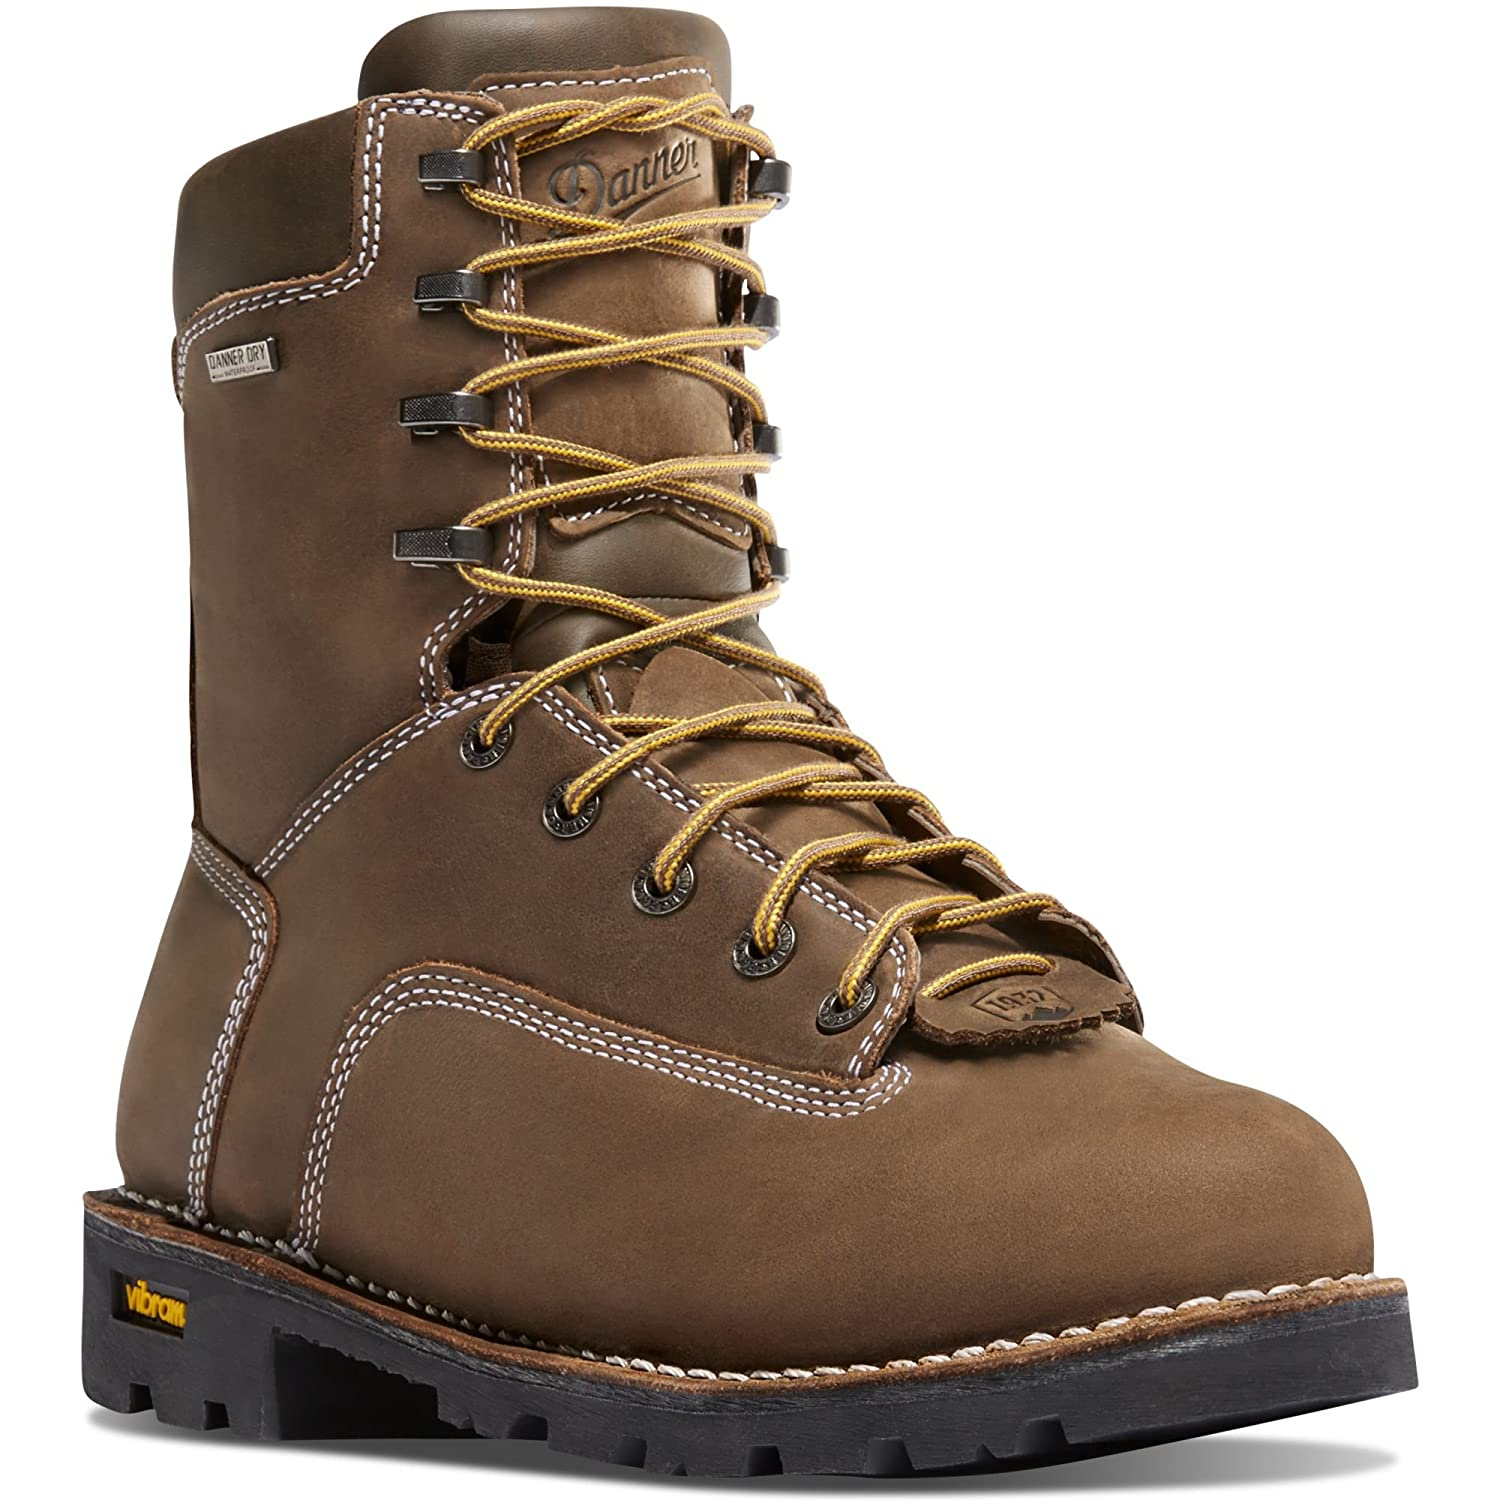 "gritstone 8"" Brown 400G (14228) Vibram Sole Oil & Slip Resistant  Waterproof  Electrical Hazard Boot Leather  Climb Mountains"